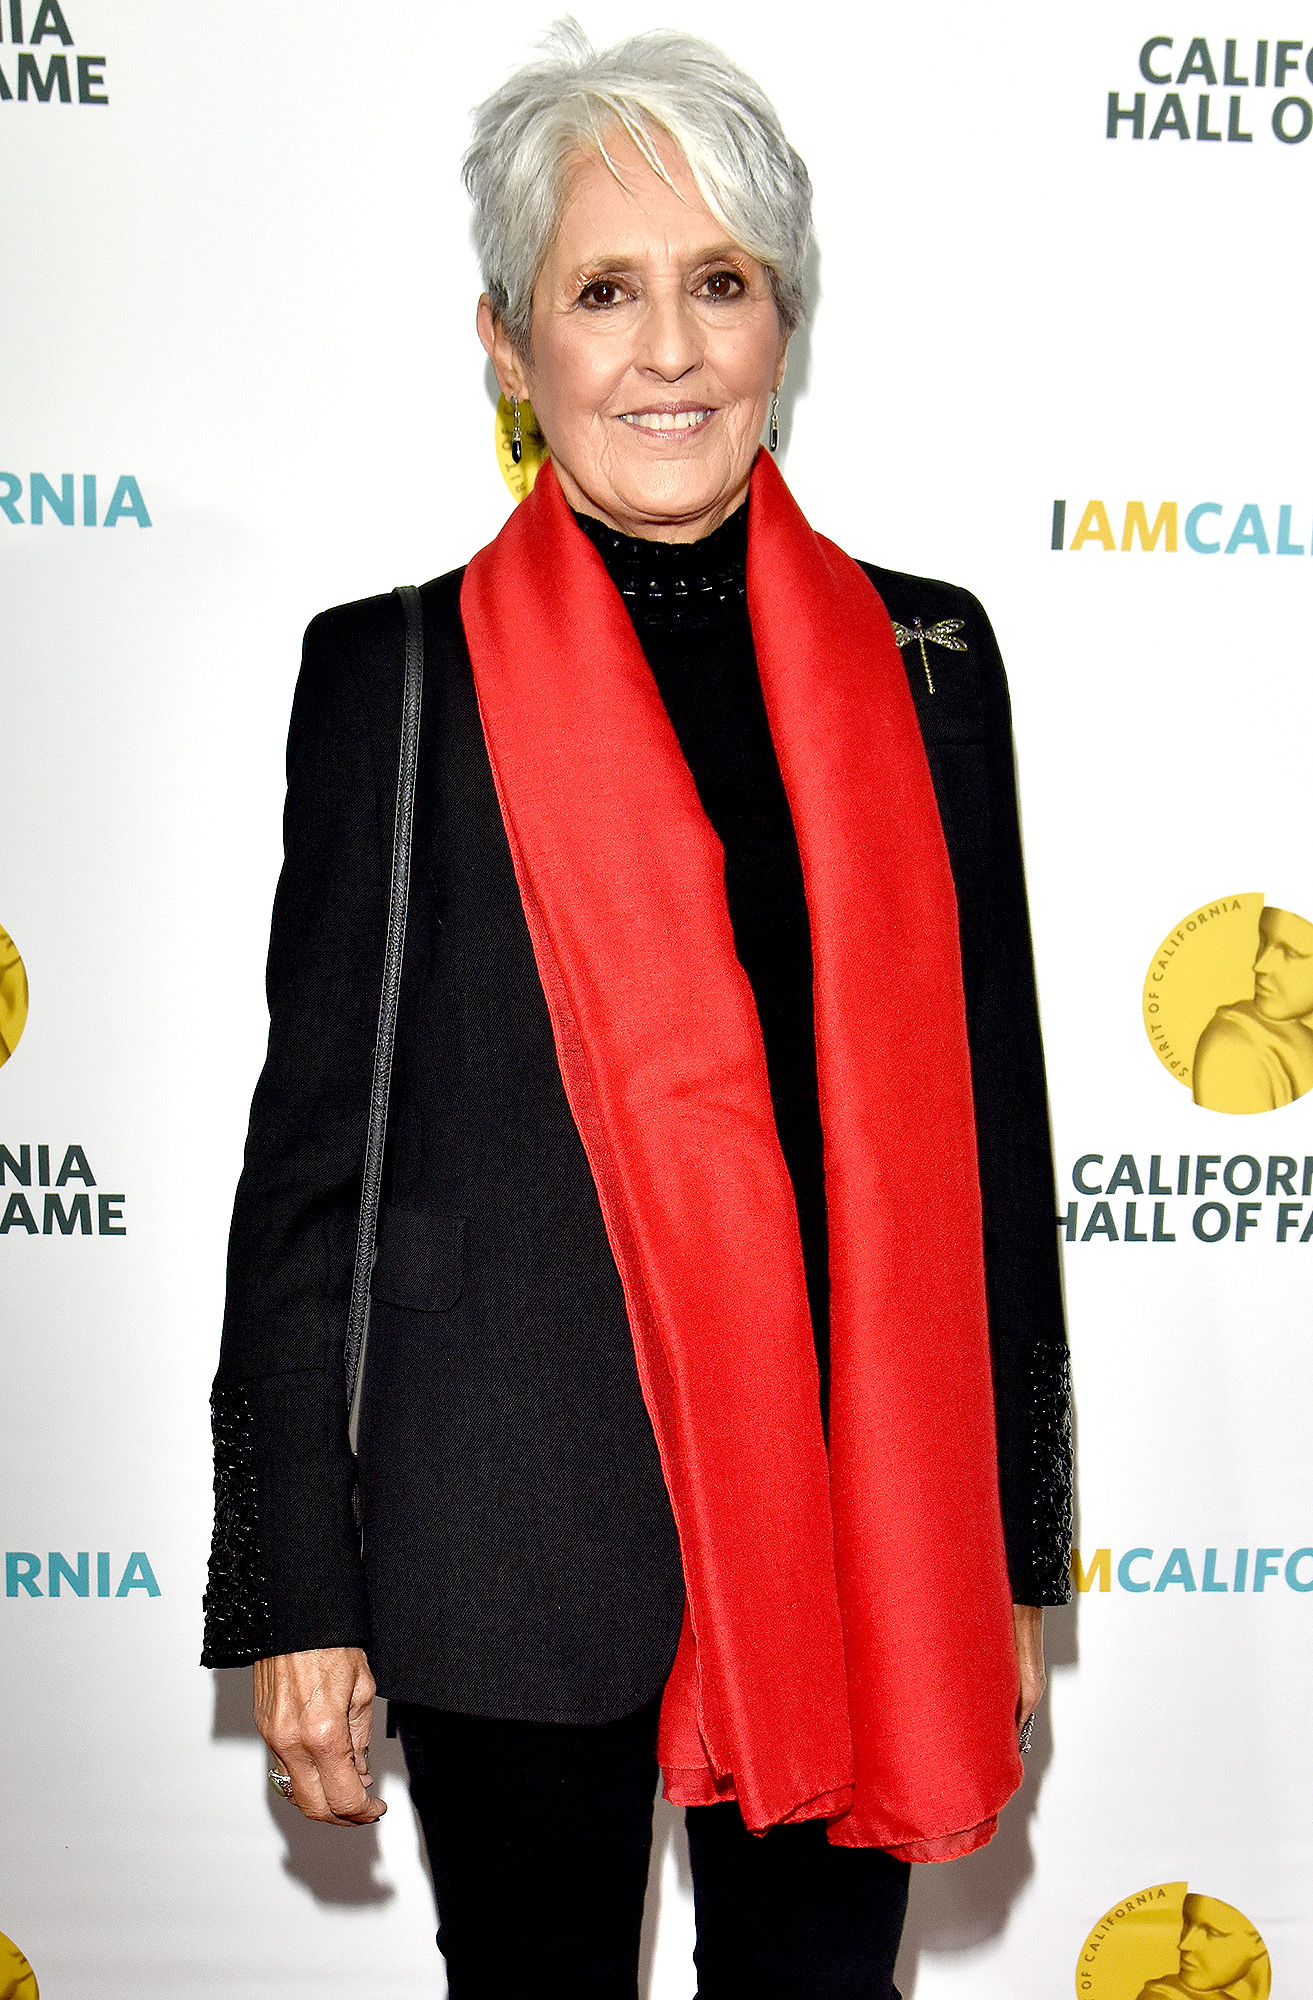 12th Annual California Hall Of Fame Ceremony - Arrivals